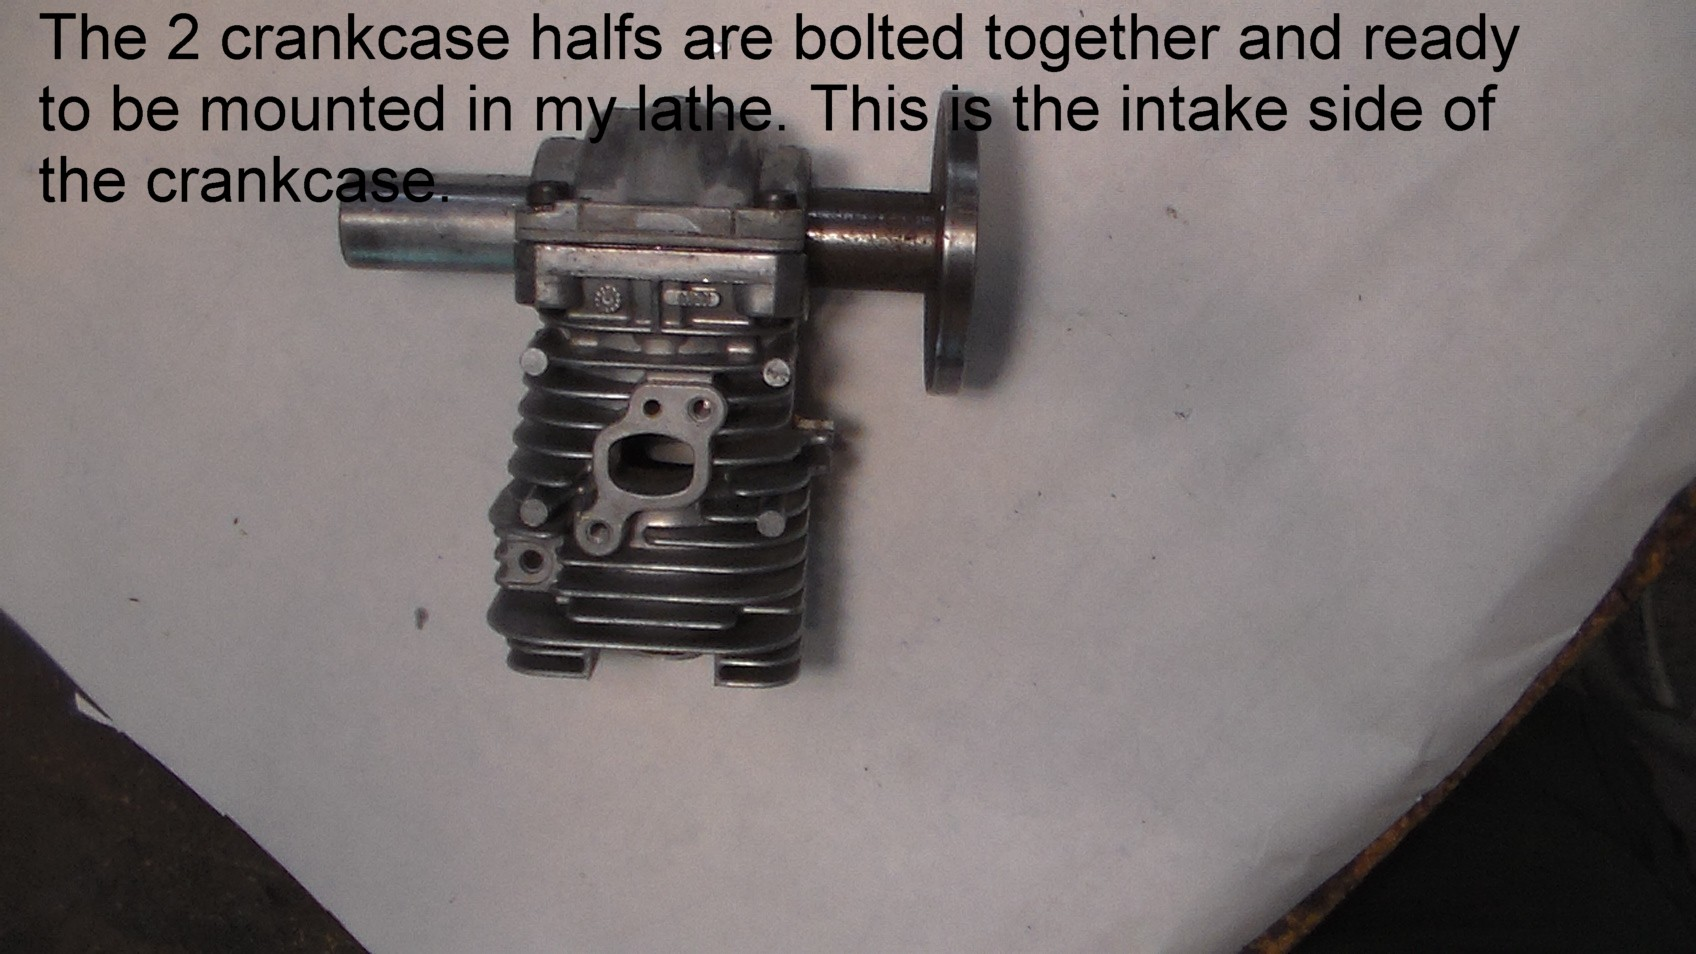 Click image for larger version  Name:Crankcase6.jpg Views:158 Size:287.0 KB ID:2194919